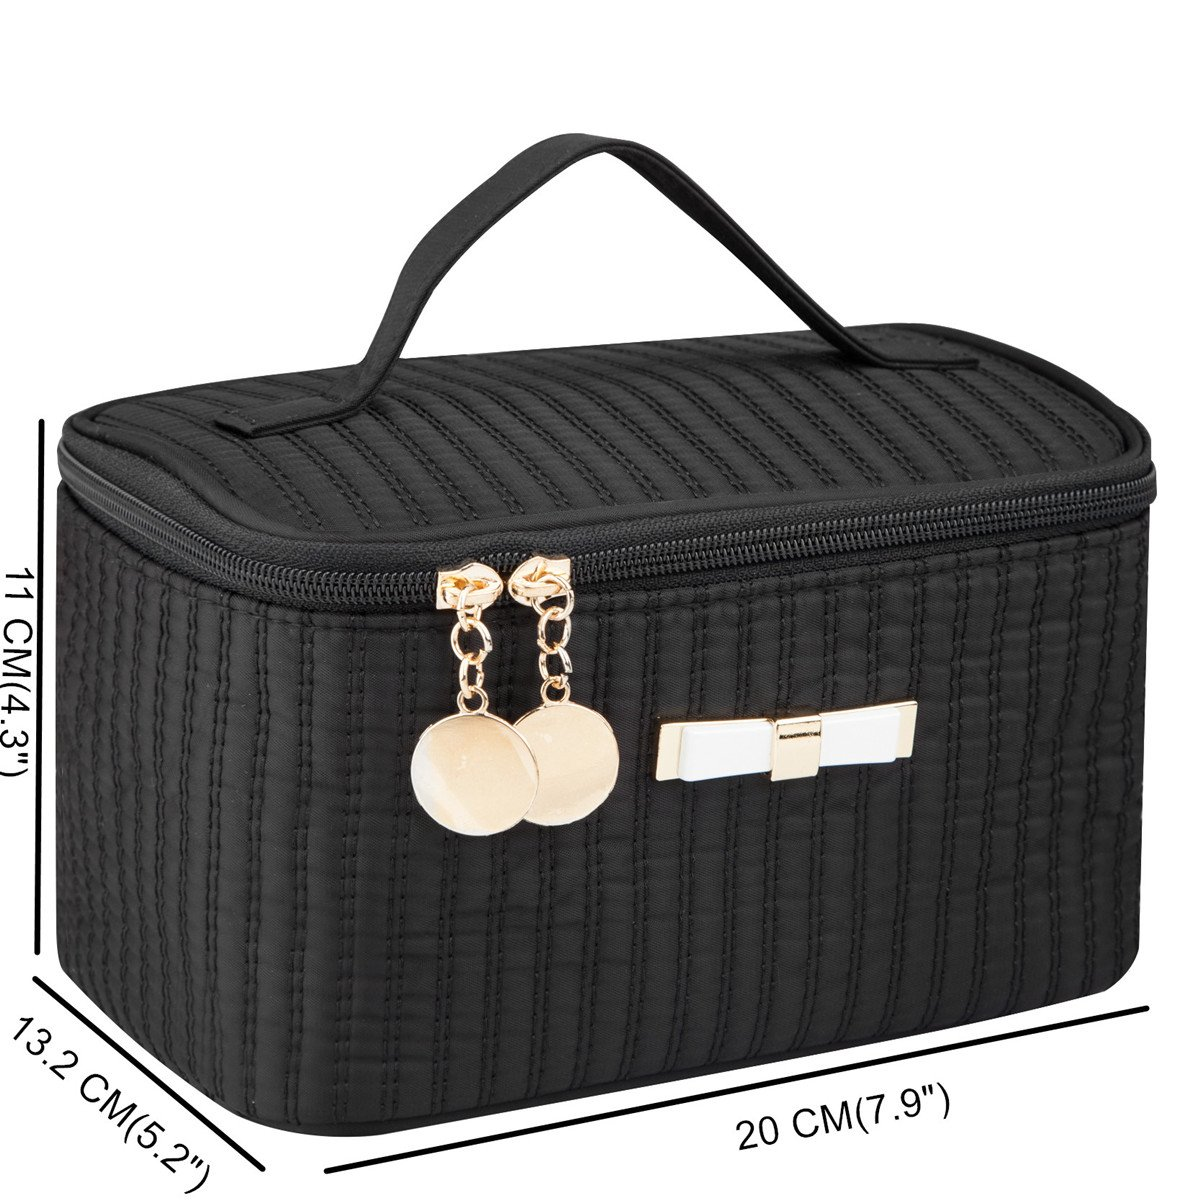 Portable Cosmetic Toiletry Small Size Bags Makeup Travel Bags with Mirror (Black)